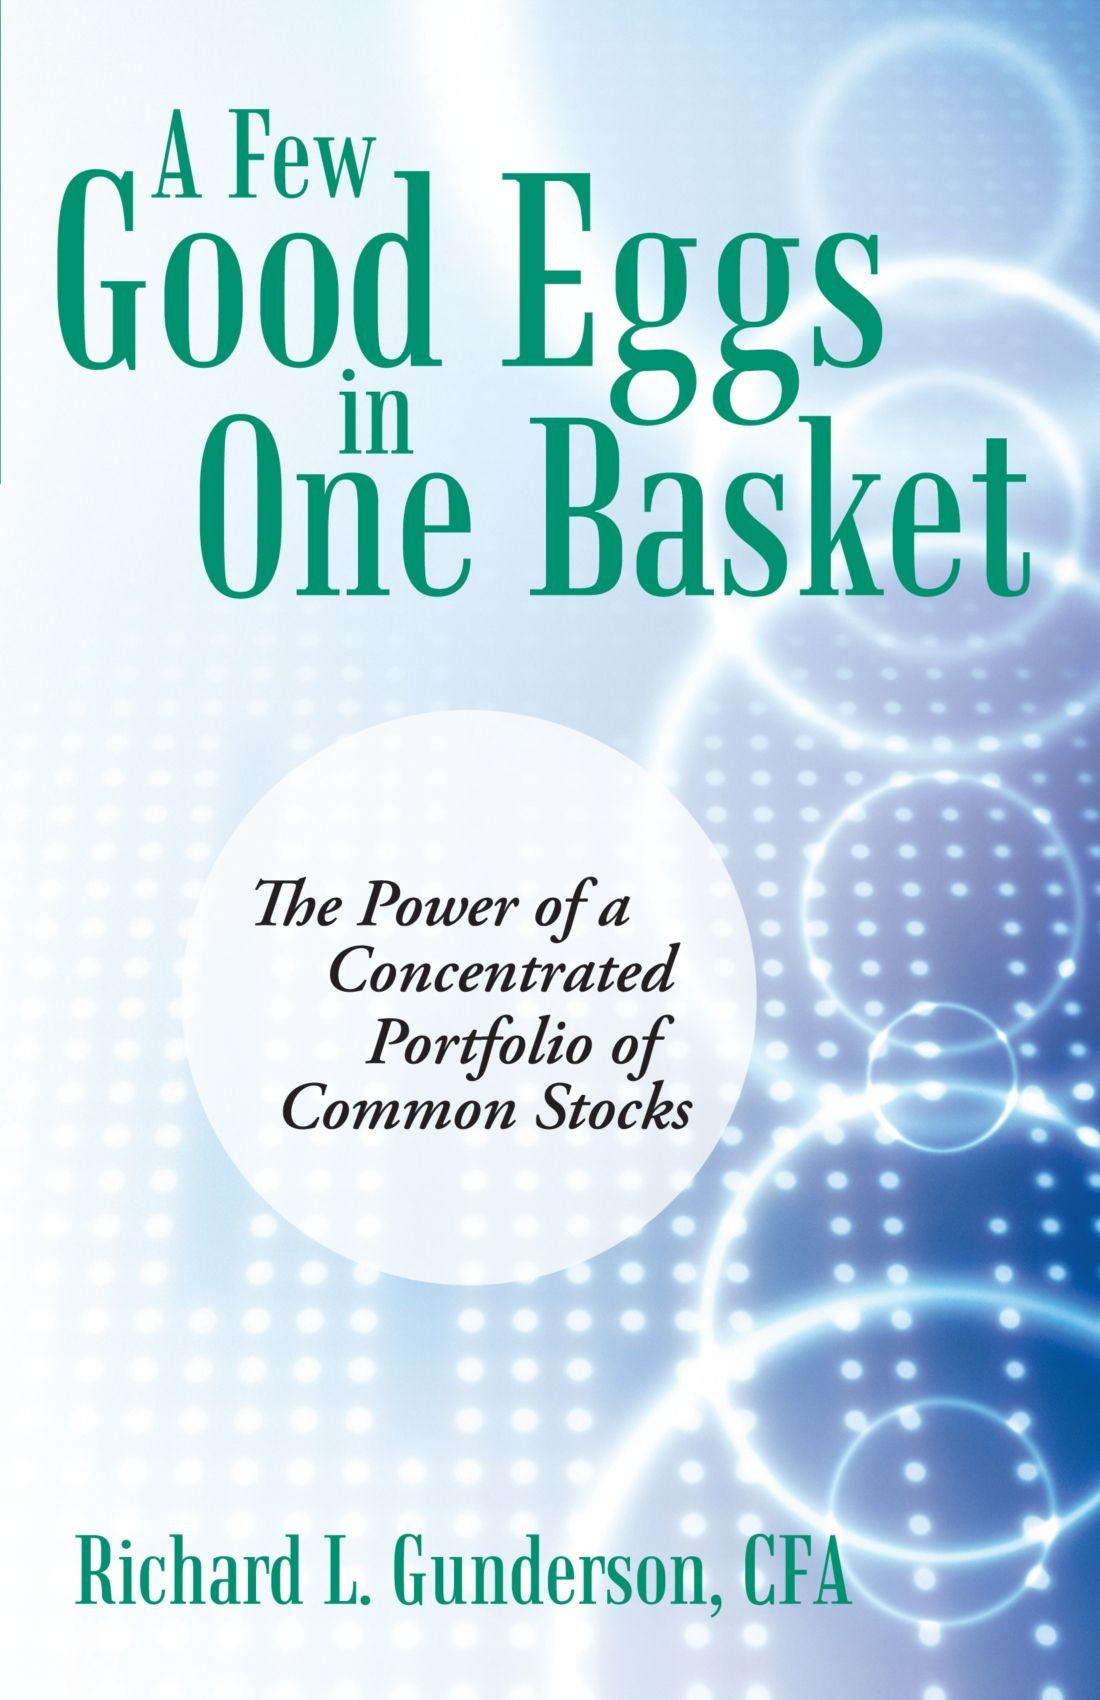 Download A Few Good Eggs in One Basket: The Power of a Concentrated Portfolio of Common Stocks PDF